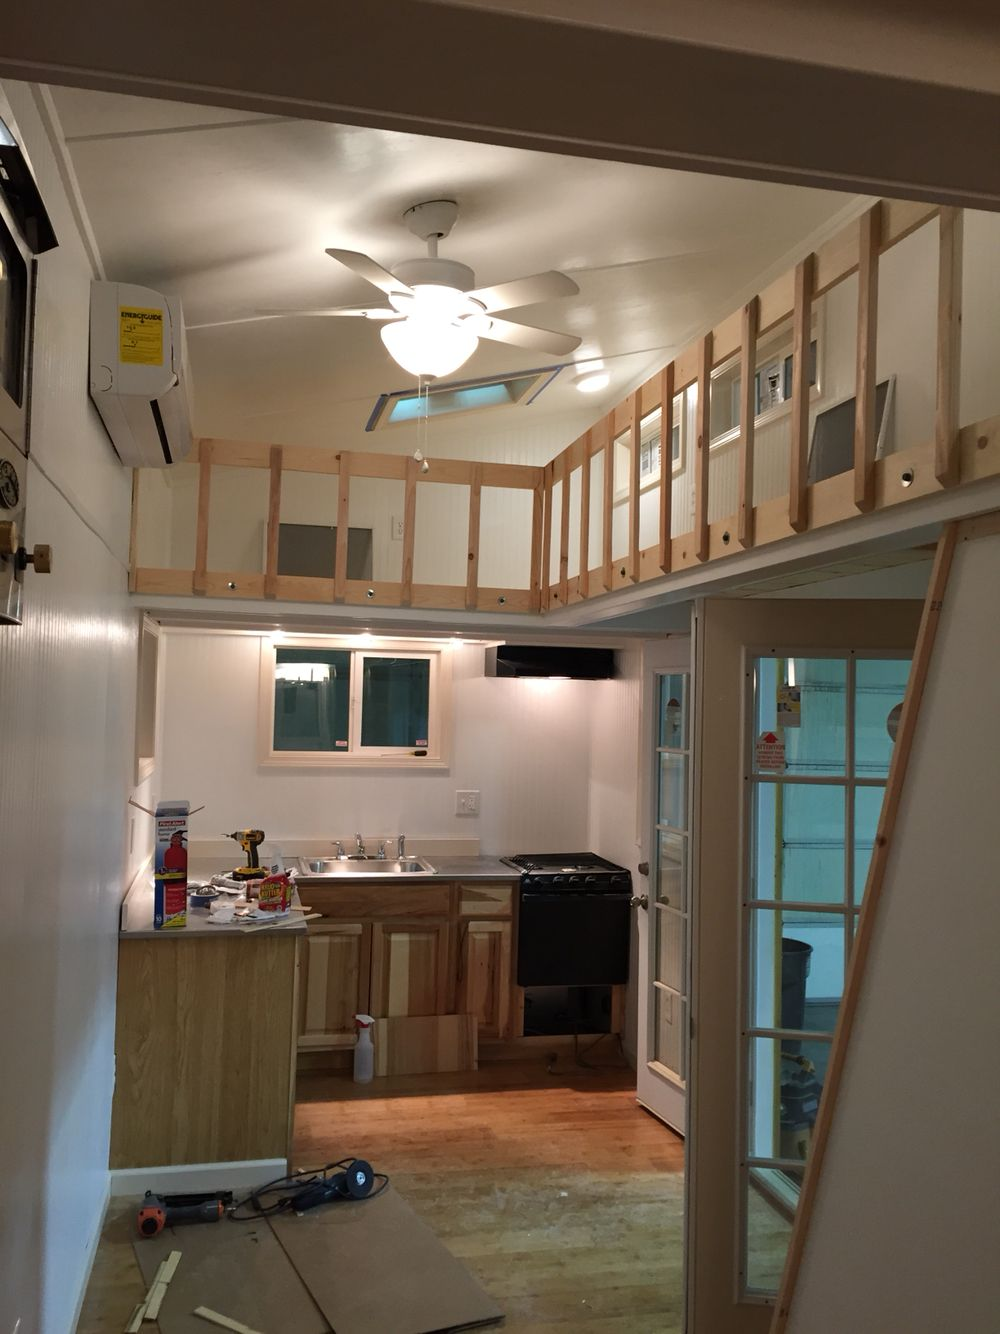 White Interior Tiny Housetiny Home With Lofts And Catwalk Built - Interiors of tiny houses